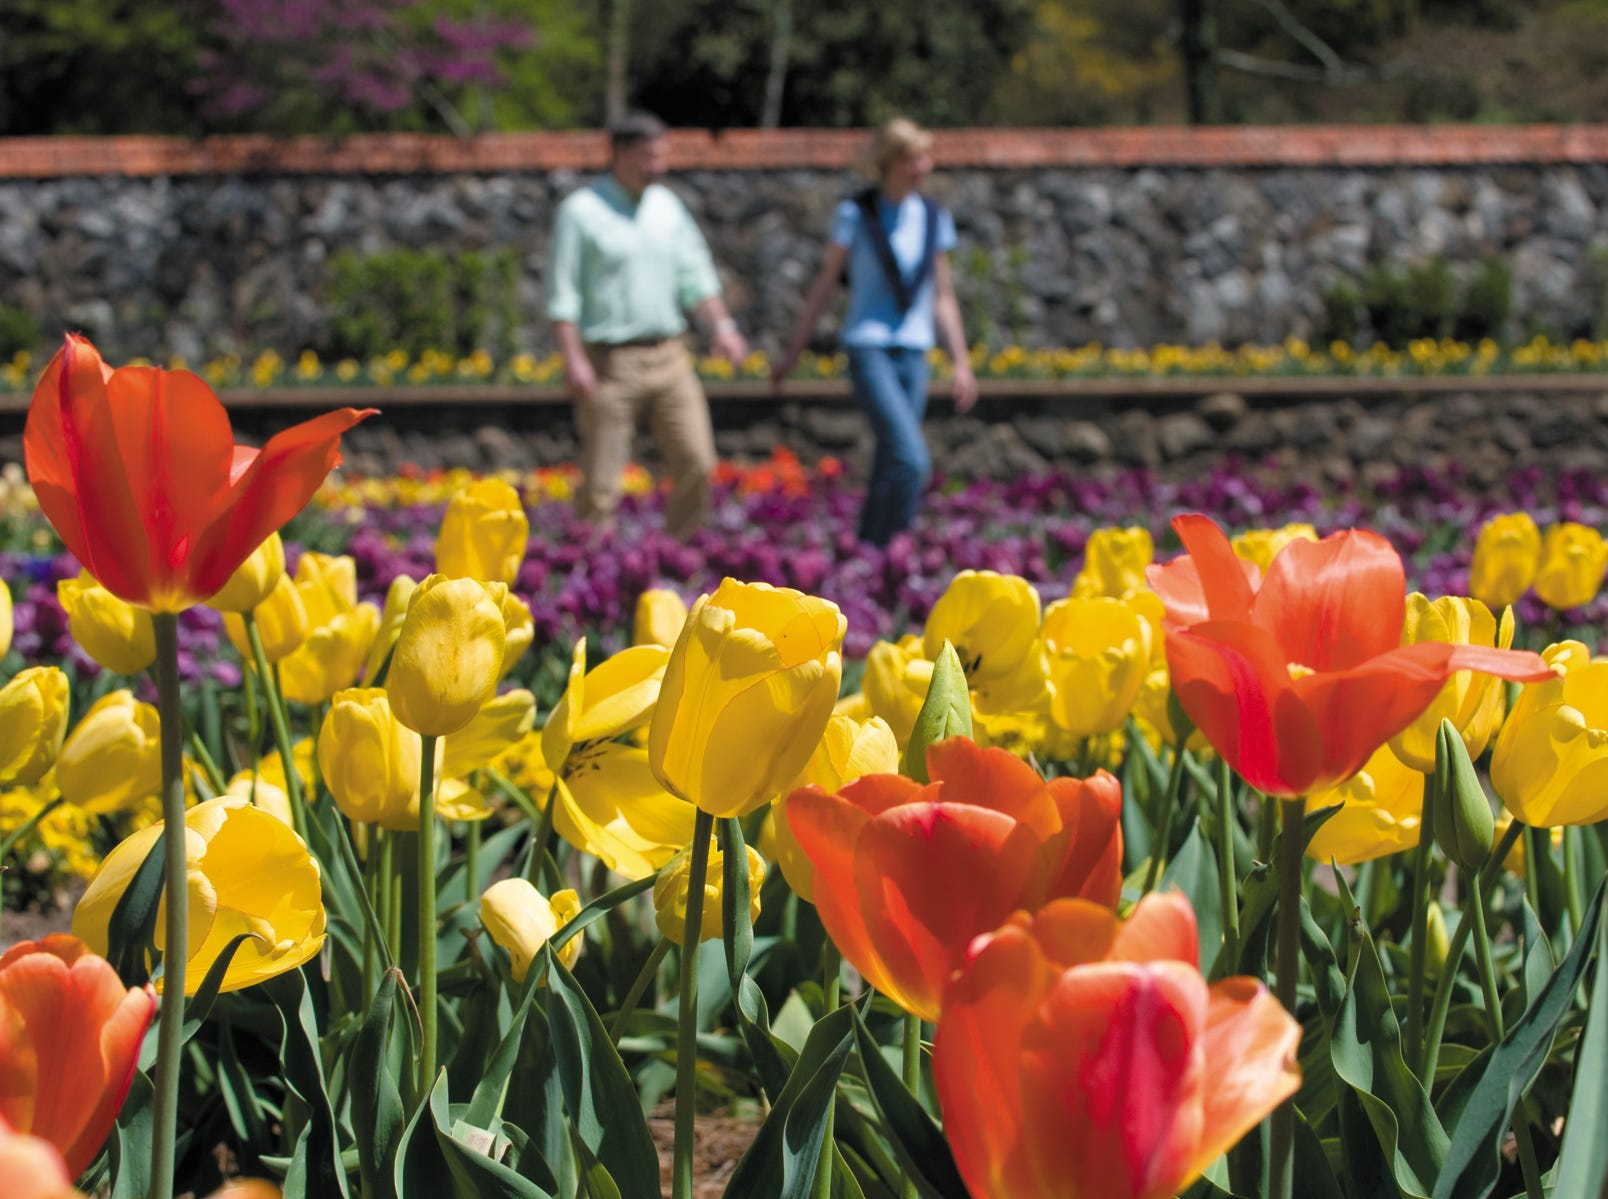 Need help with your own garden? Biltmore Estate's experts are on hand on weekends.